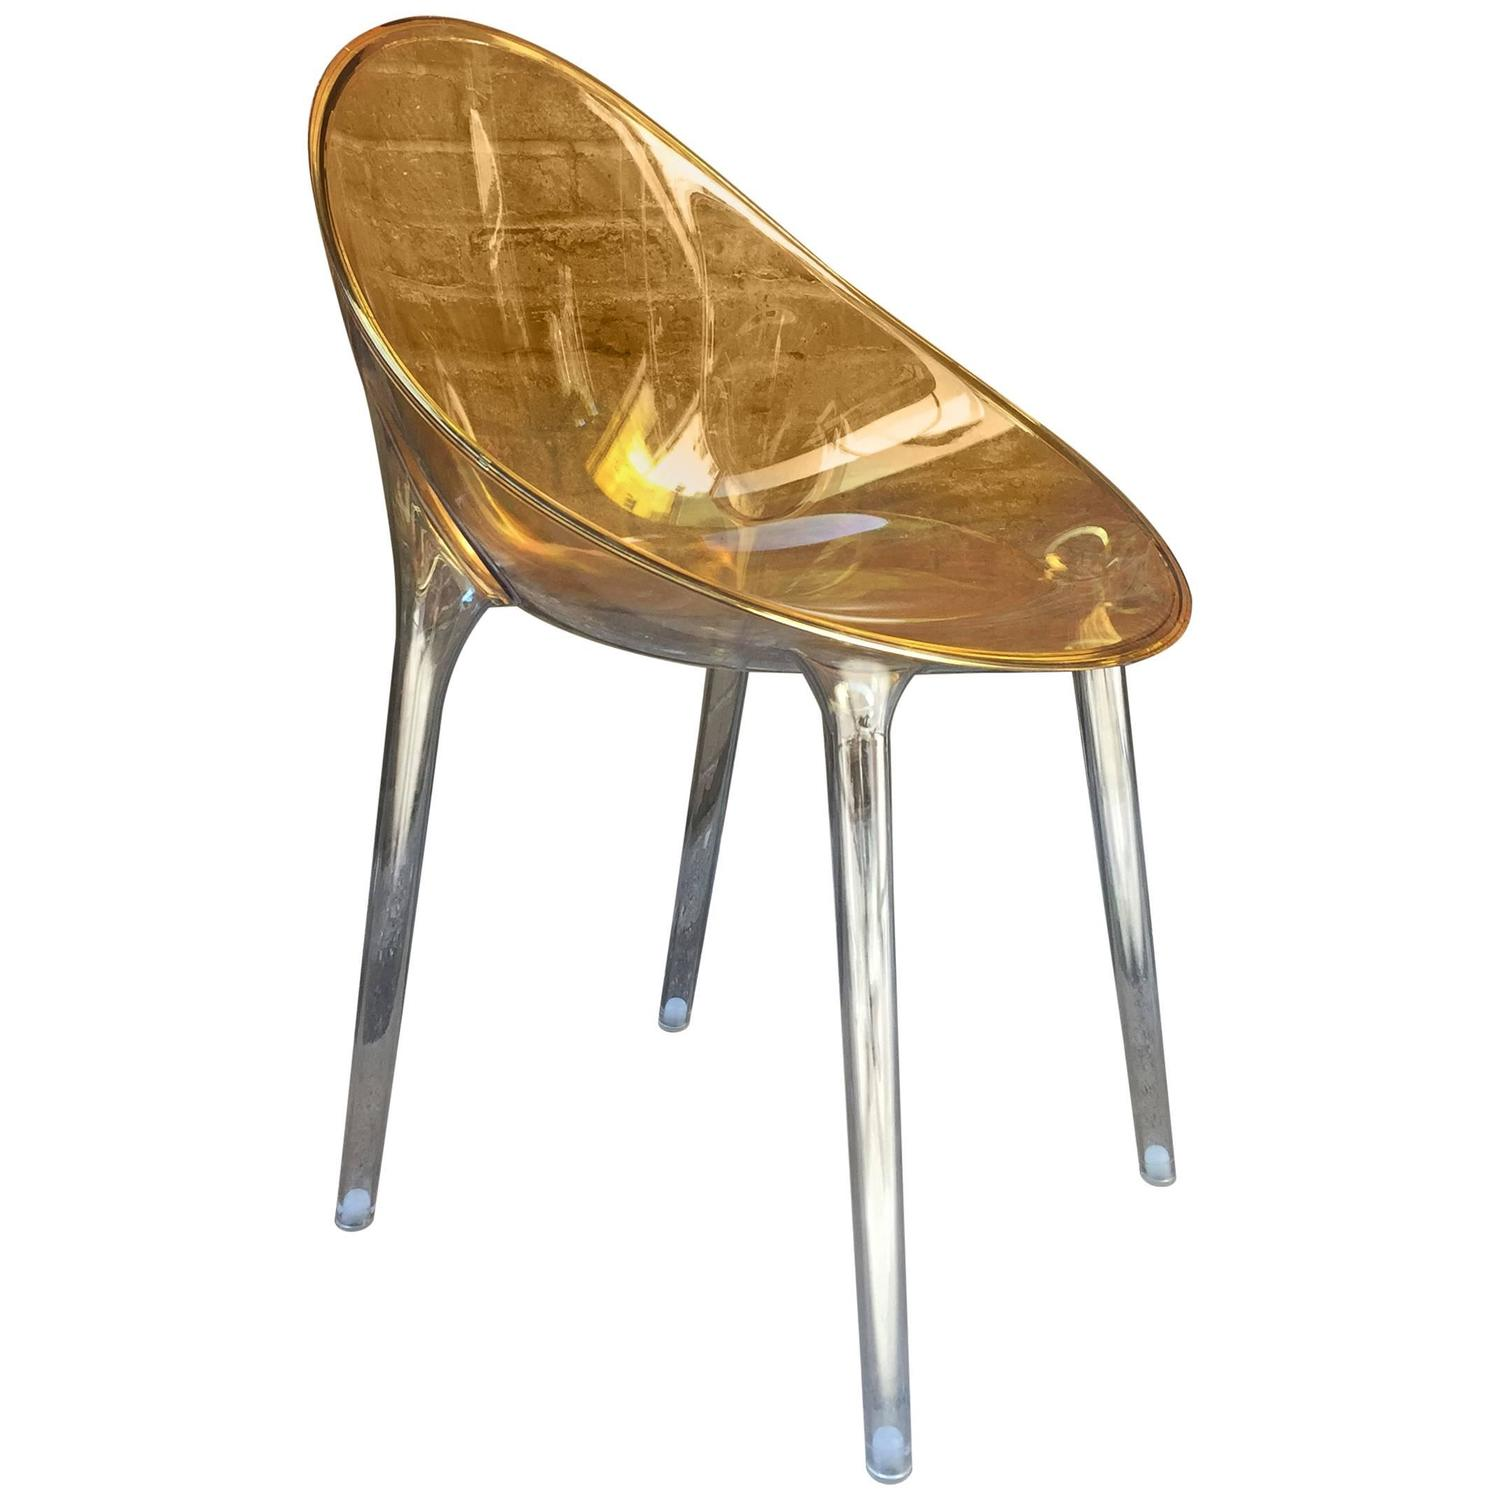 Philippe Starck Kartell Mr Impossible Chair For Sale At